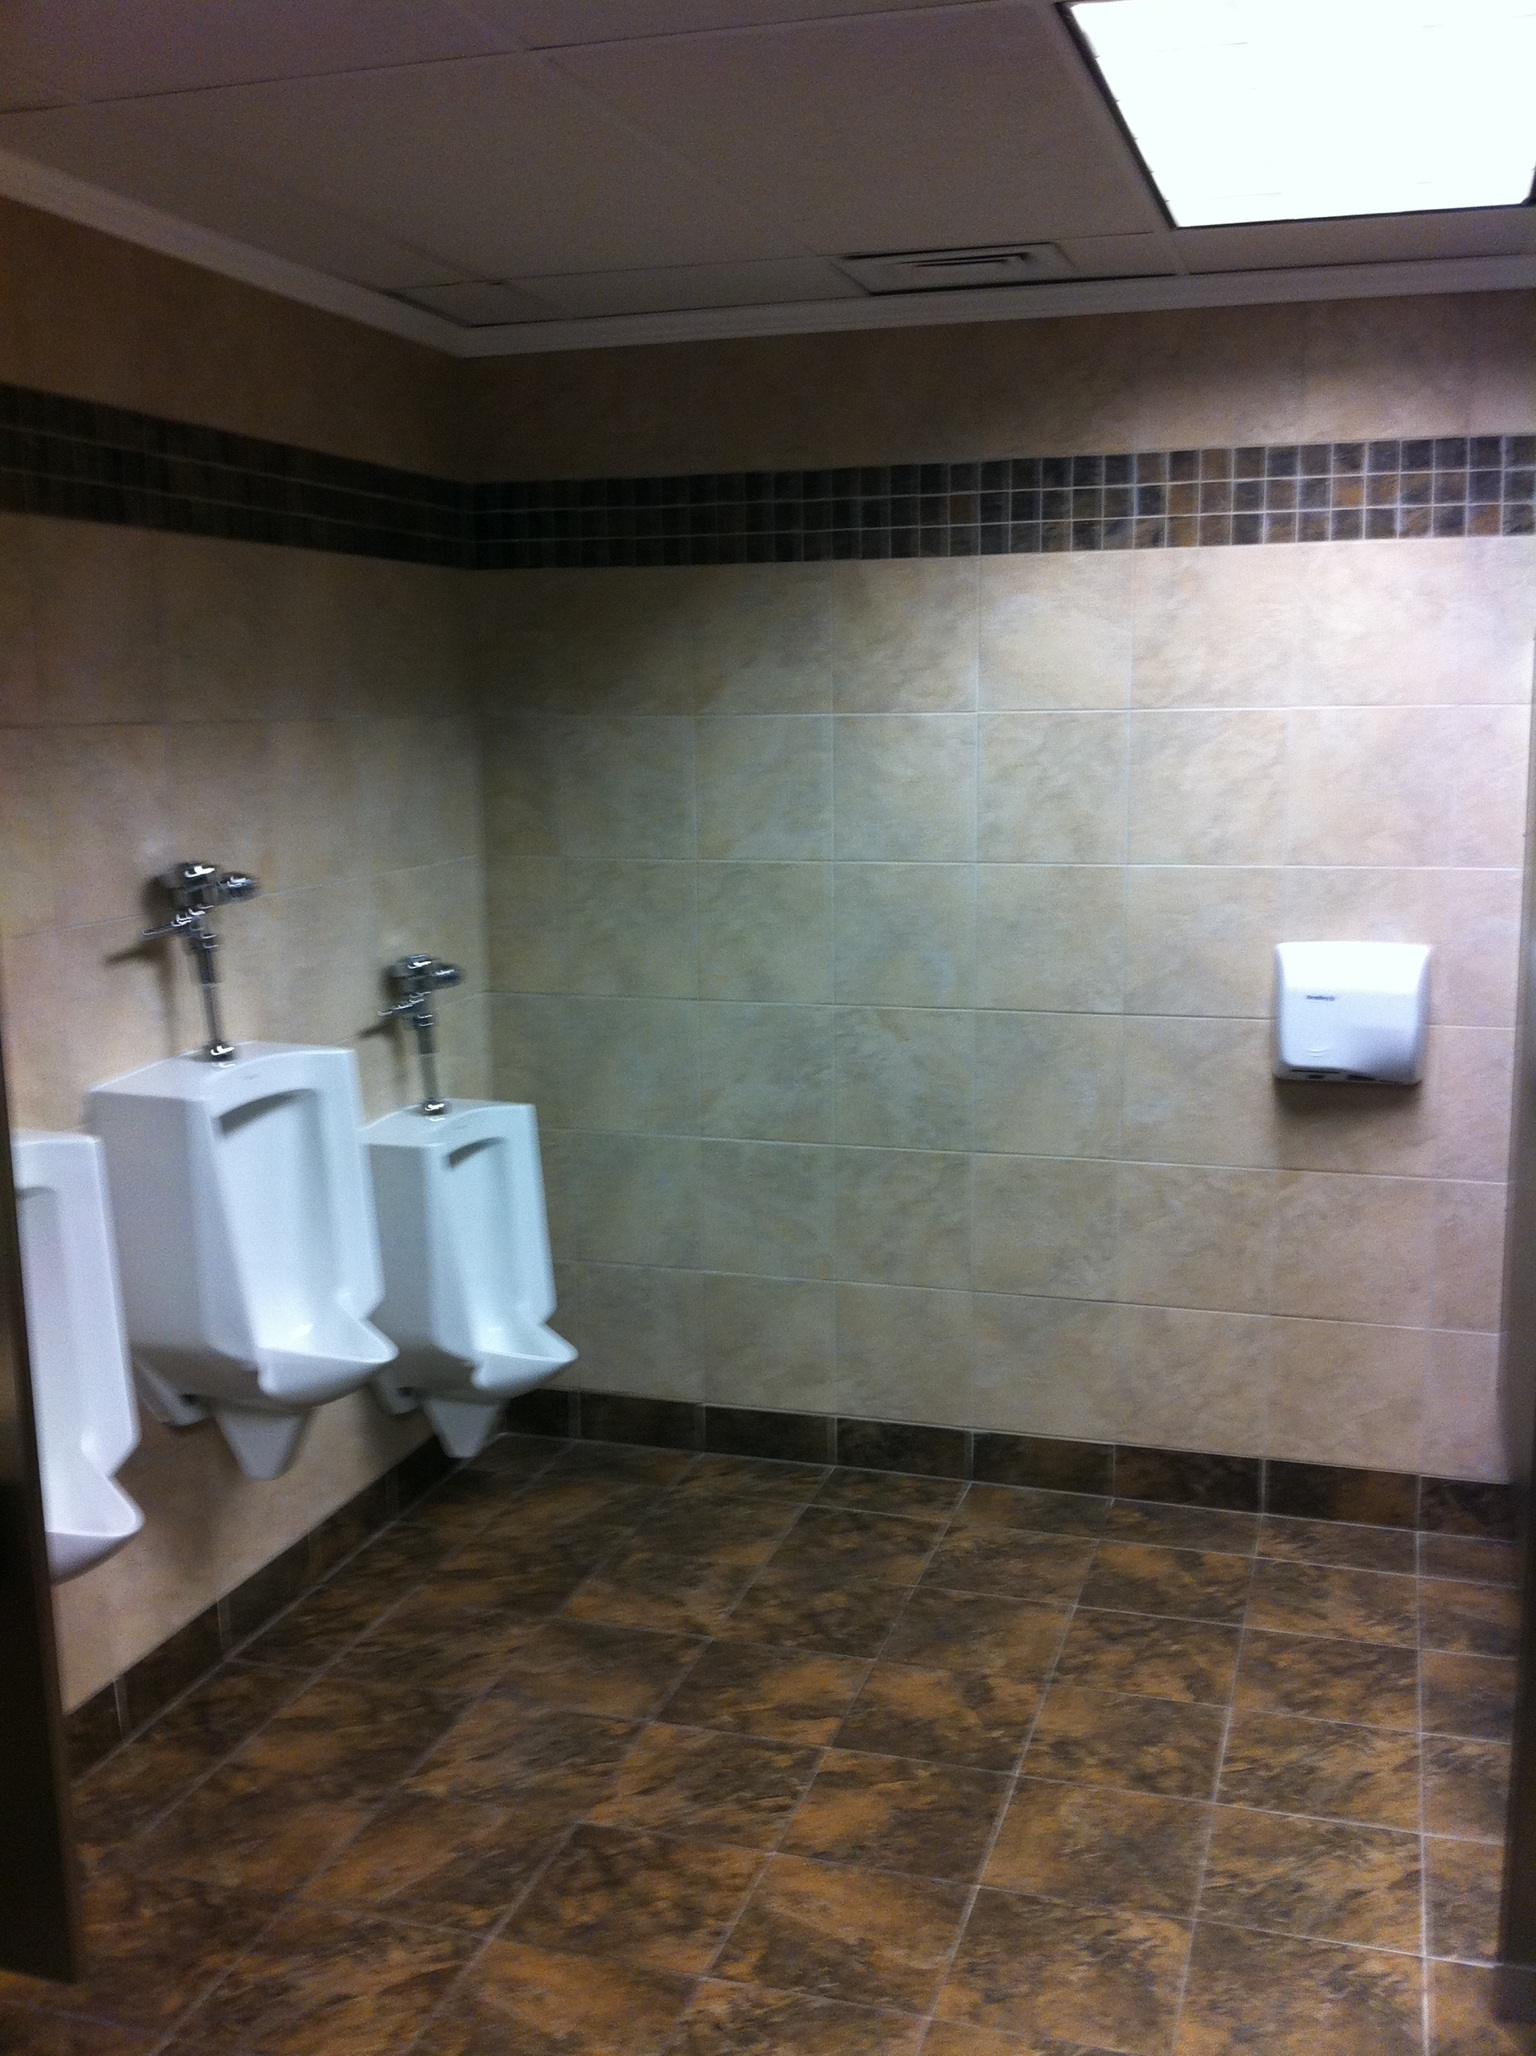 What Is A Pcm >> Sears Bathroom Remodel - Petrill Construction Management